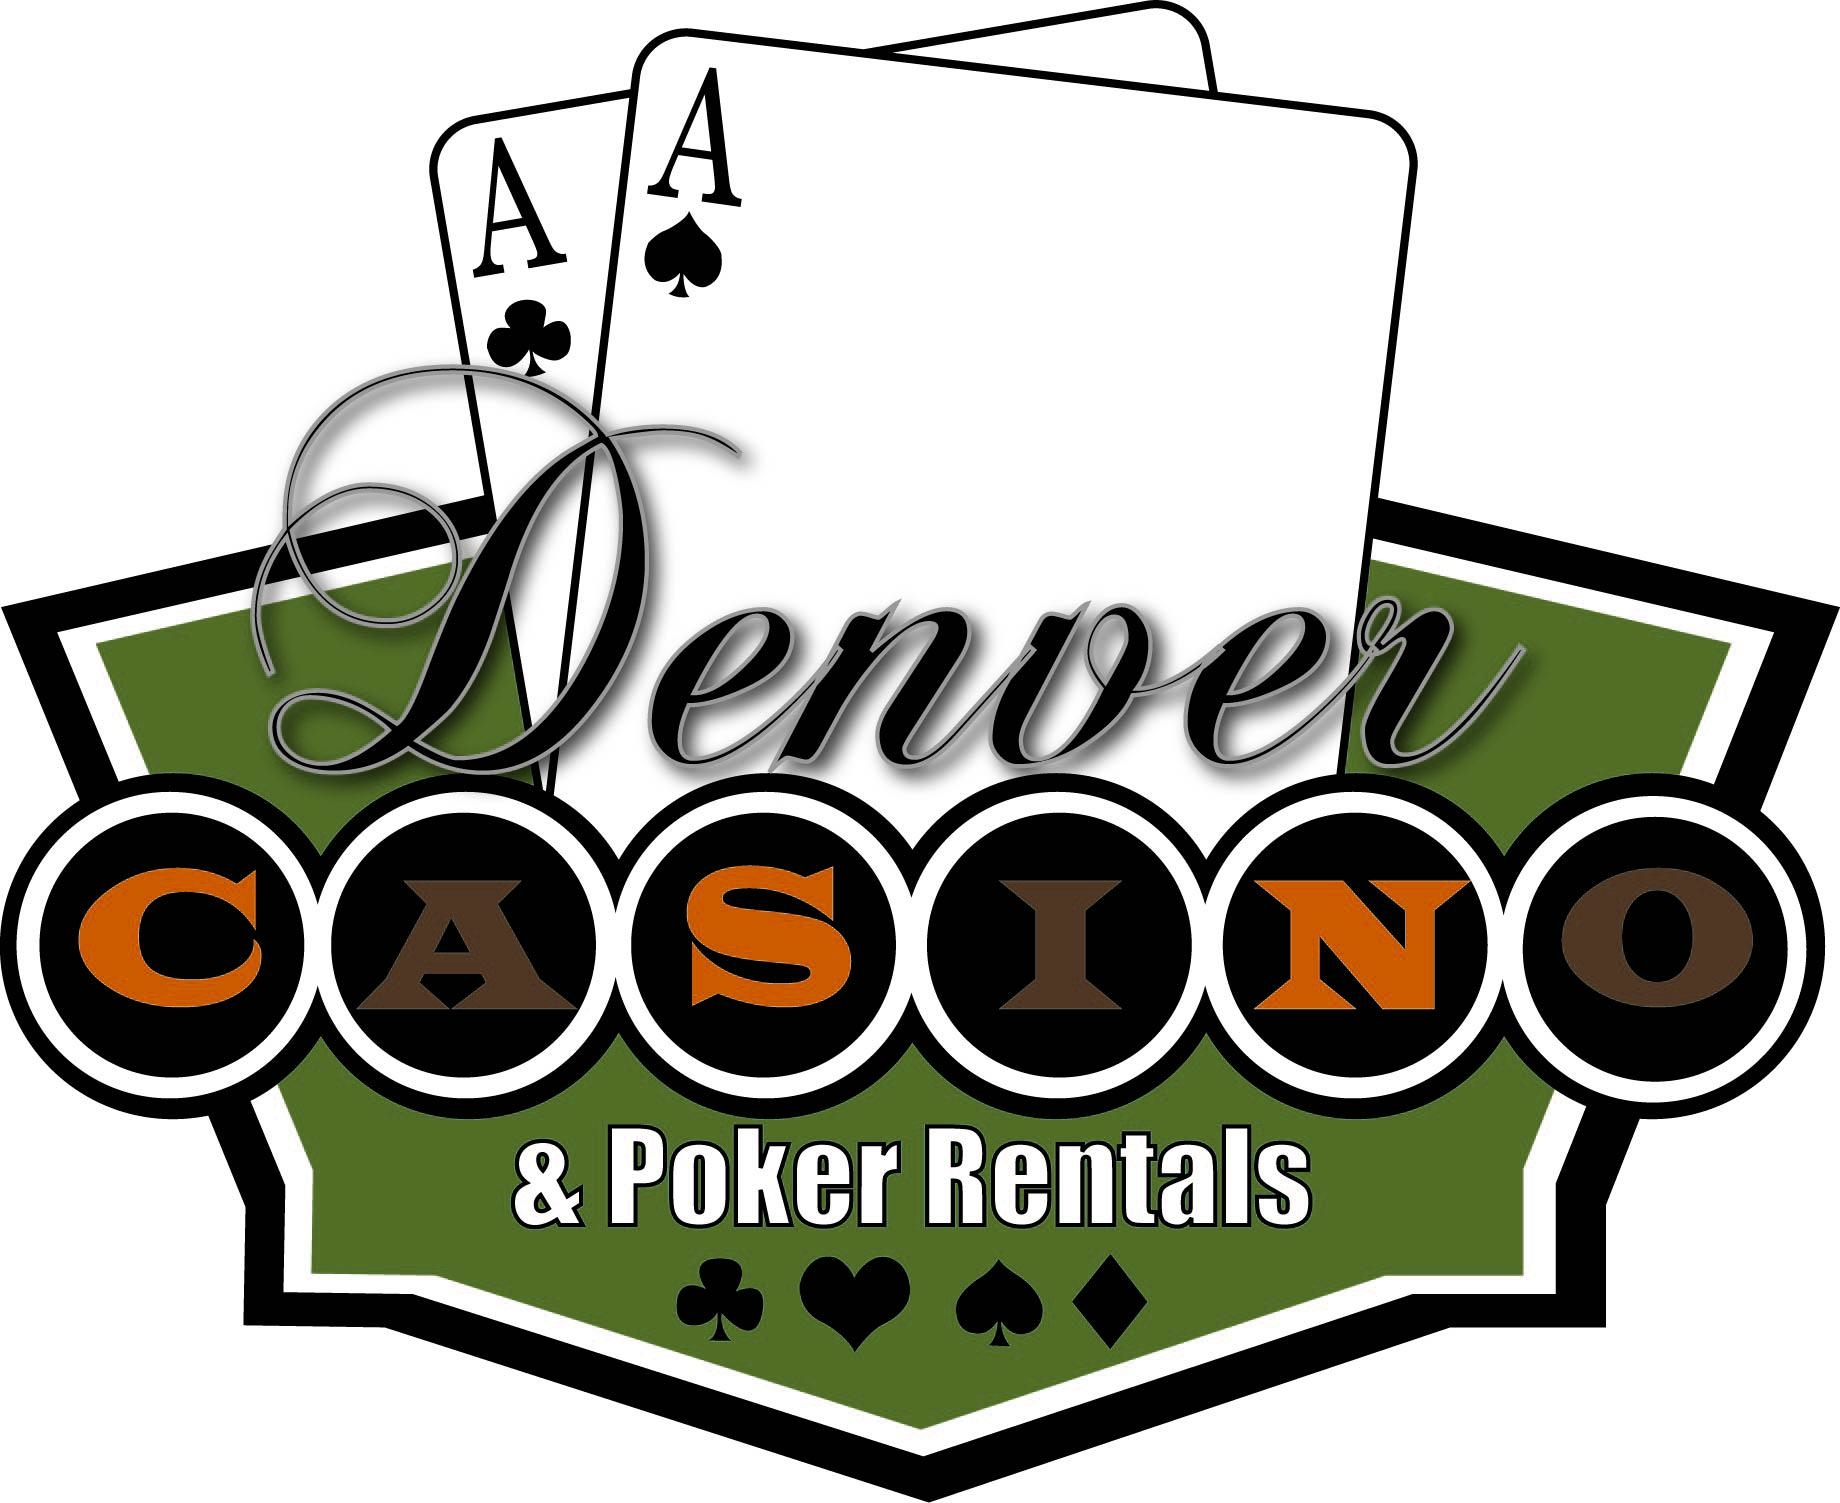 Casino events near me